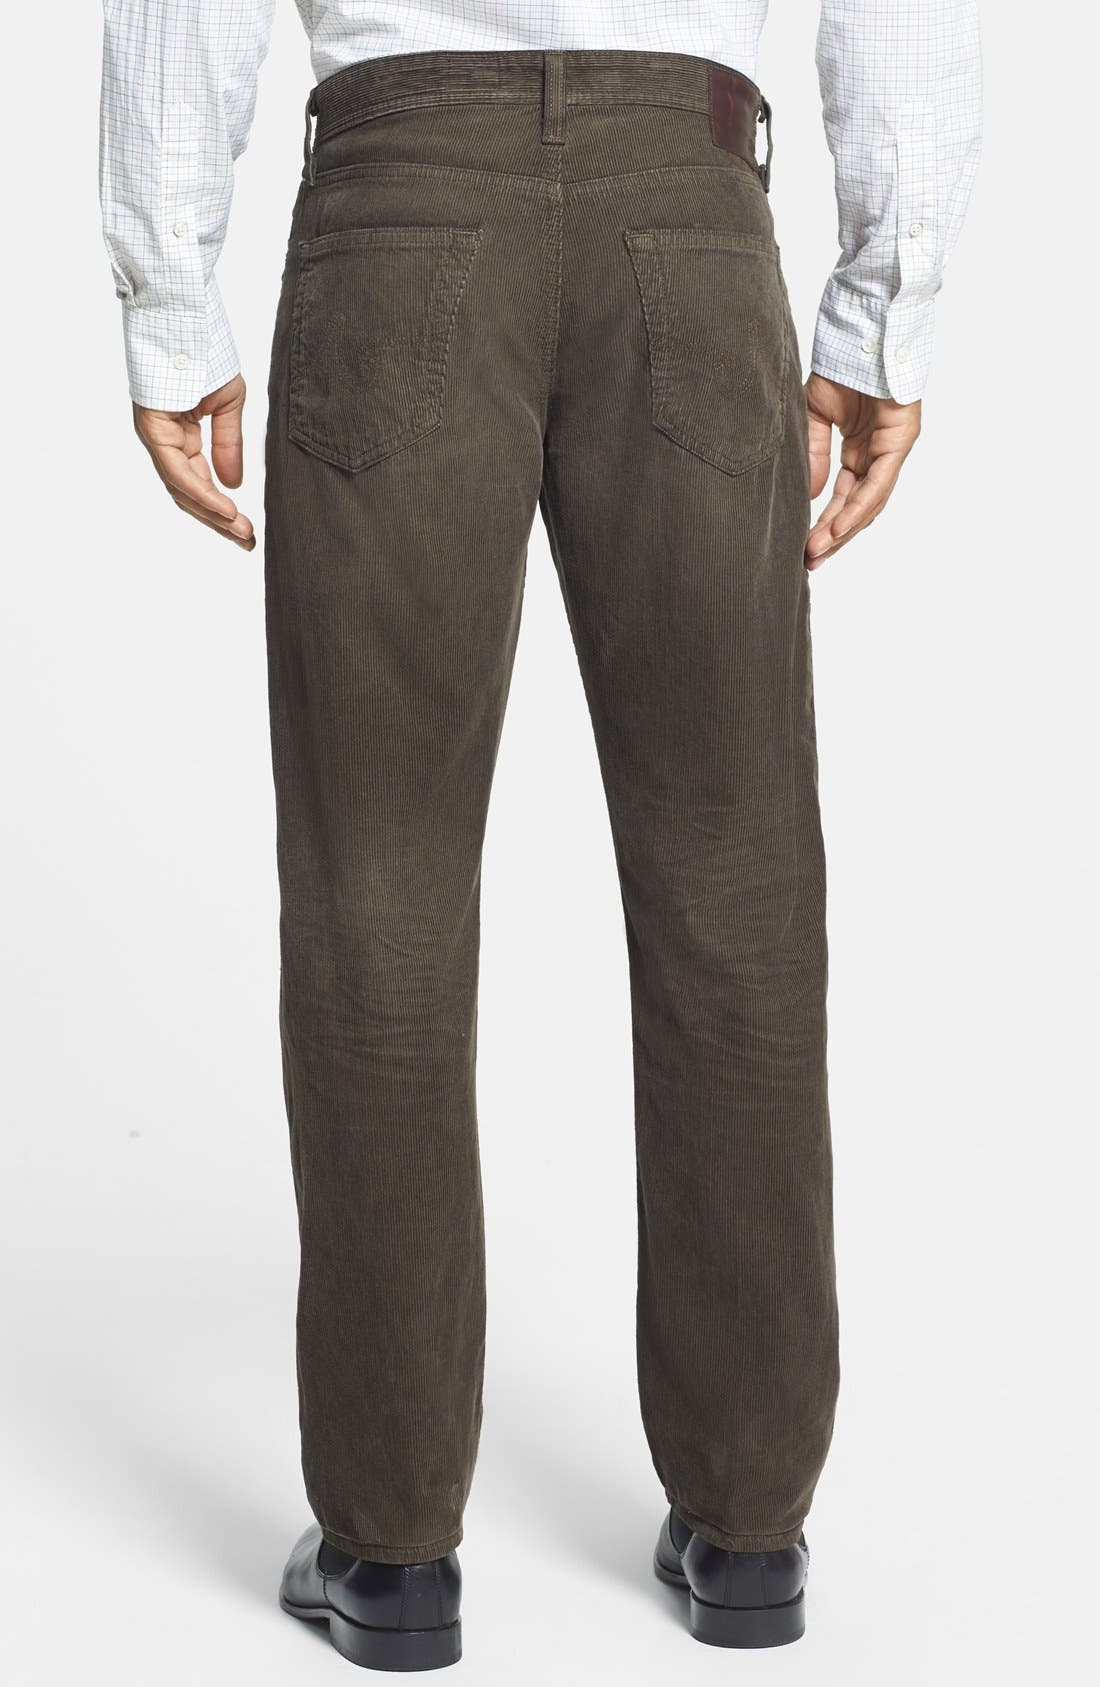 'Graduate' Tailored Straight Leg Corduroy Pants,                             Alternate thumbnail 22, color,